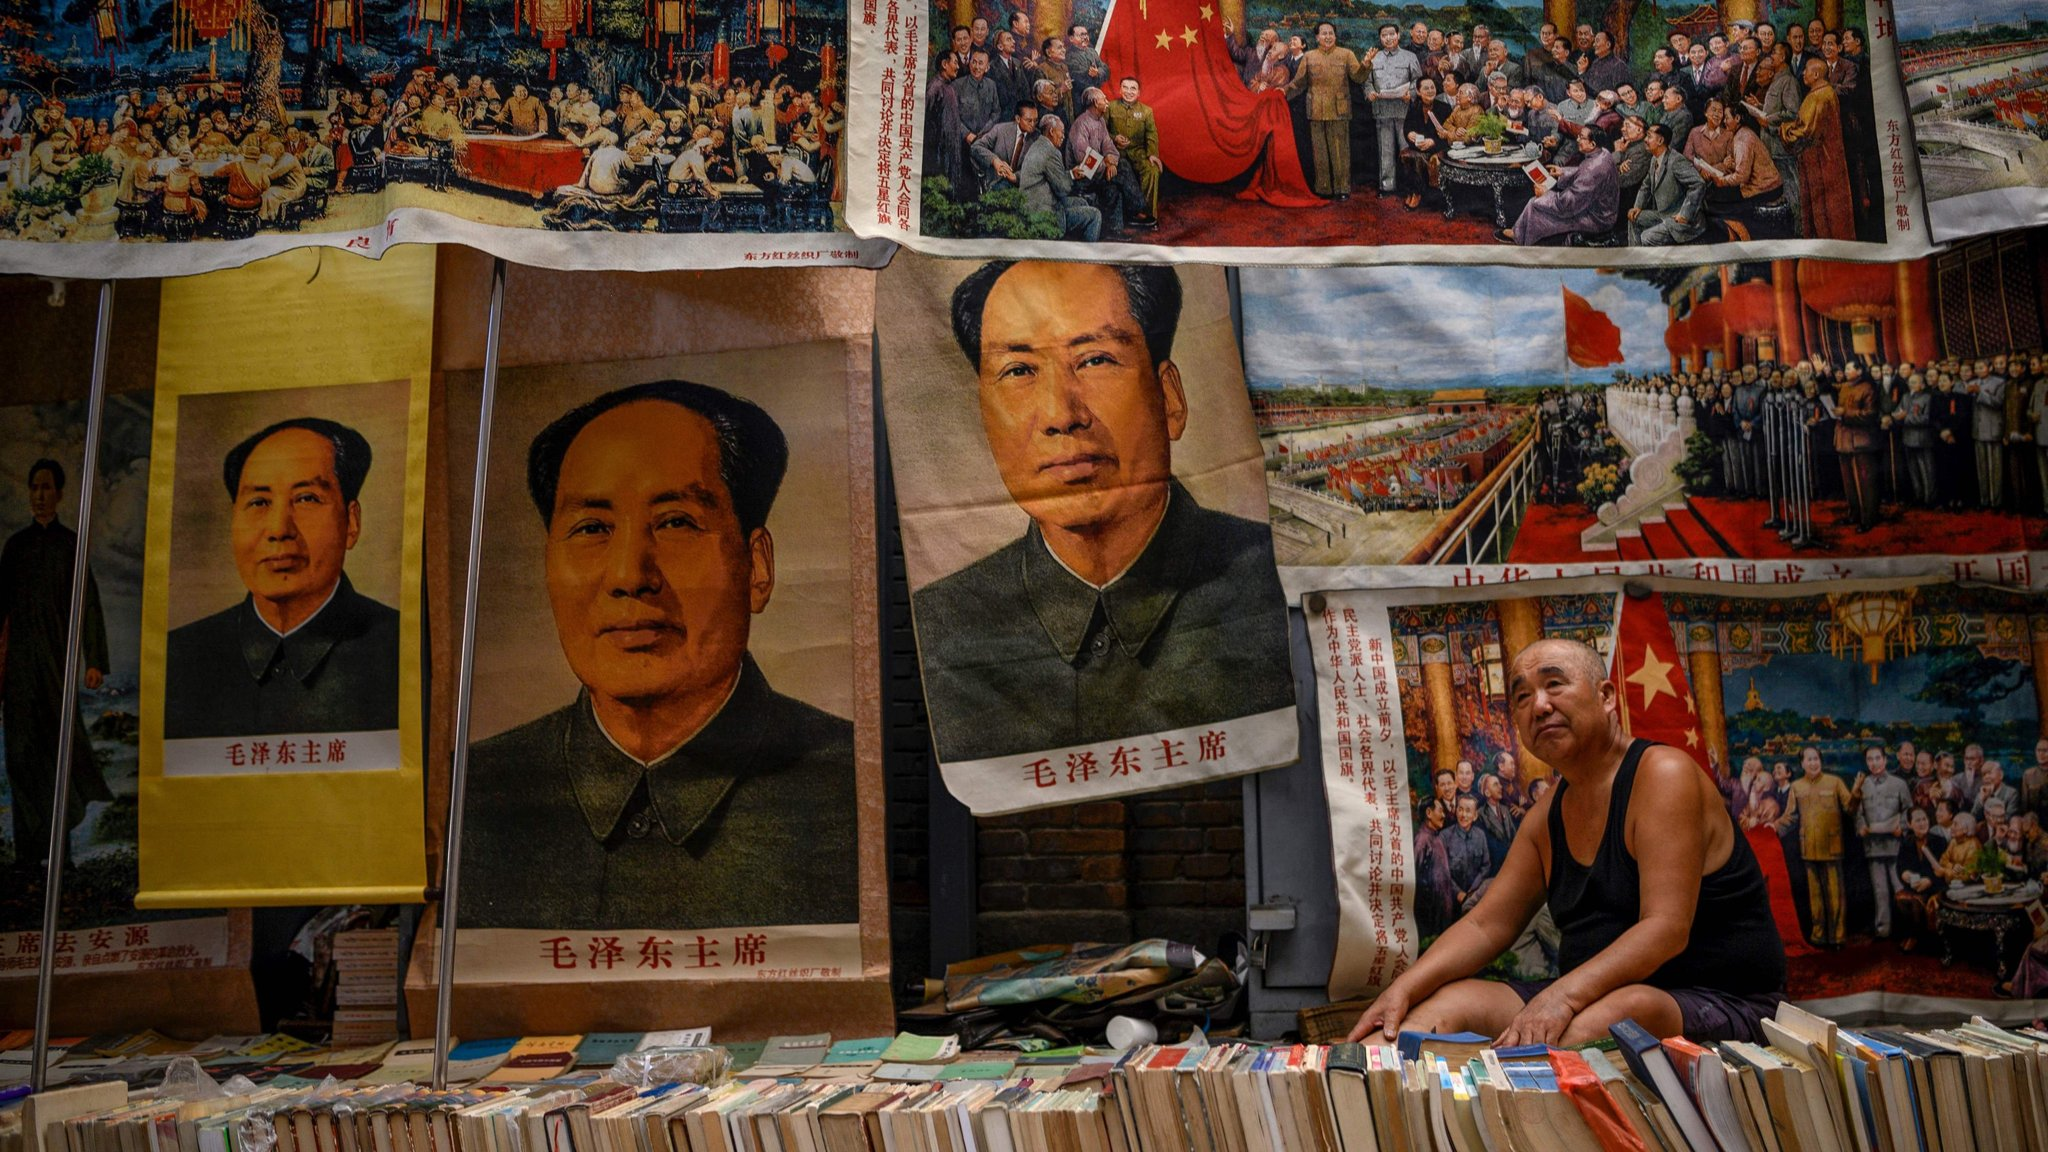 China's long march to national rejuvenation